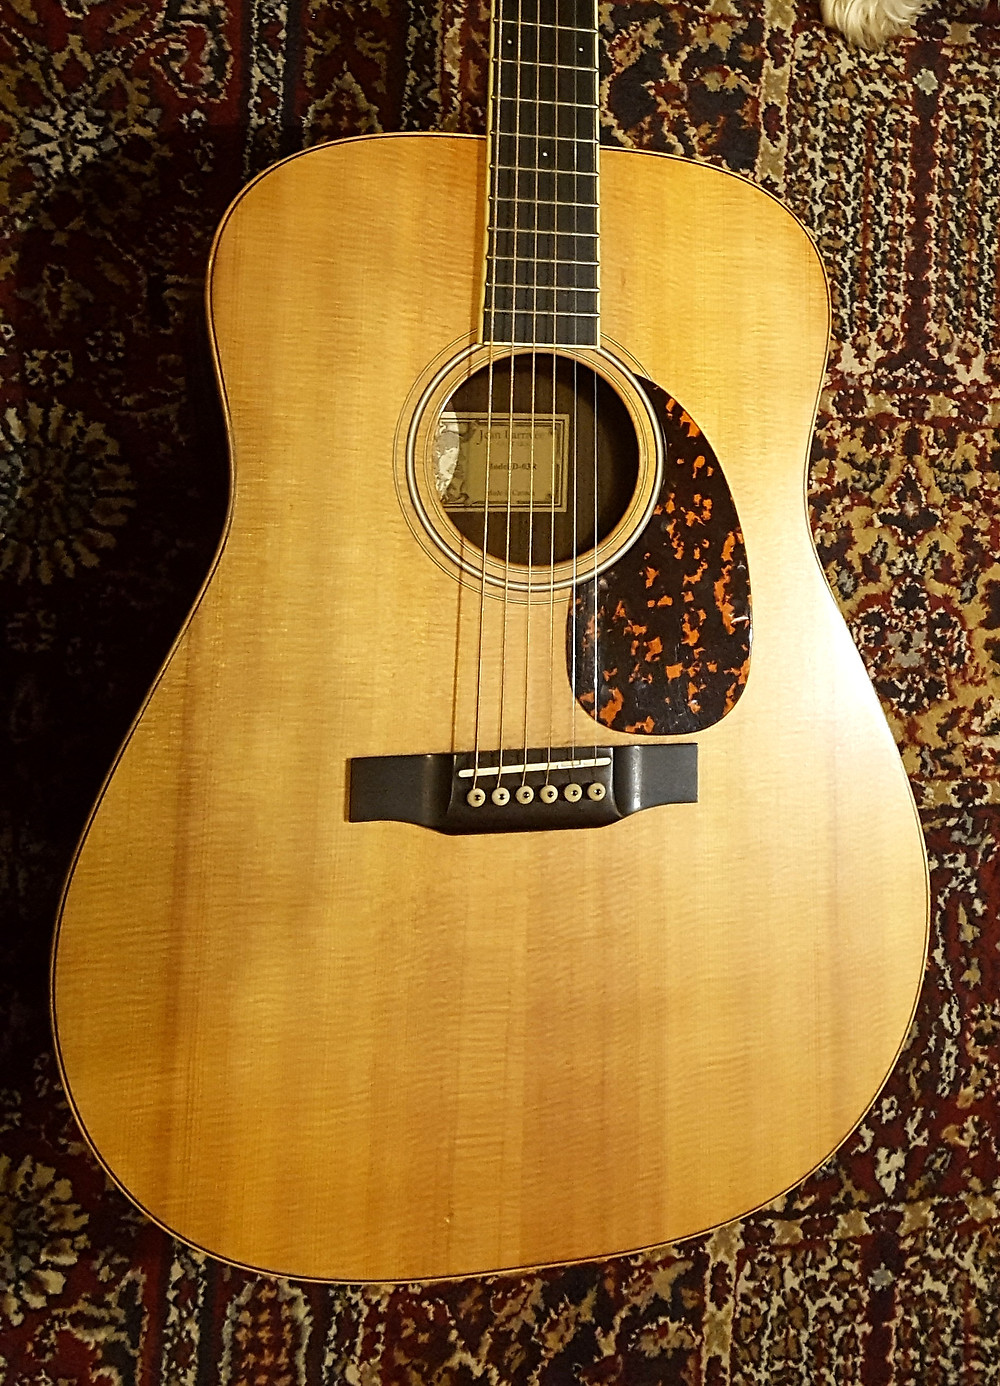 Larivee acoustic guitar